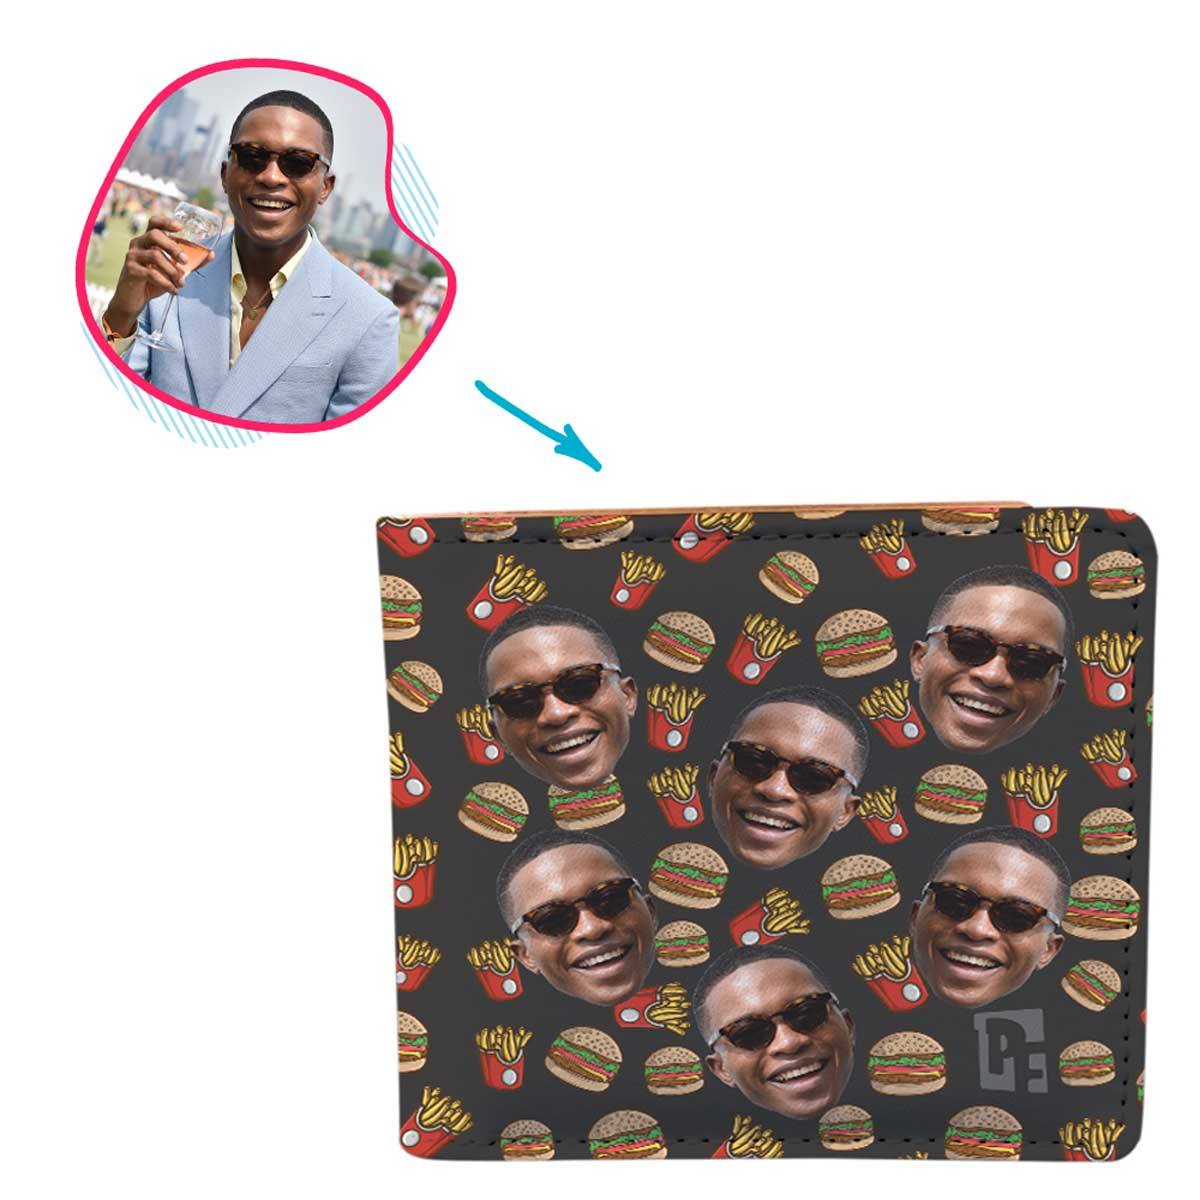 dark Fastfood wallet personalized with photo of face printed on it